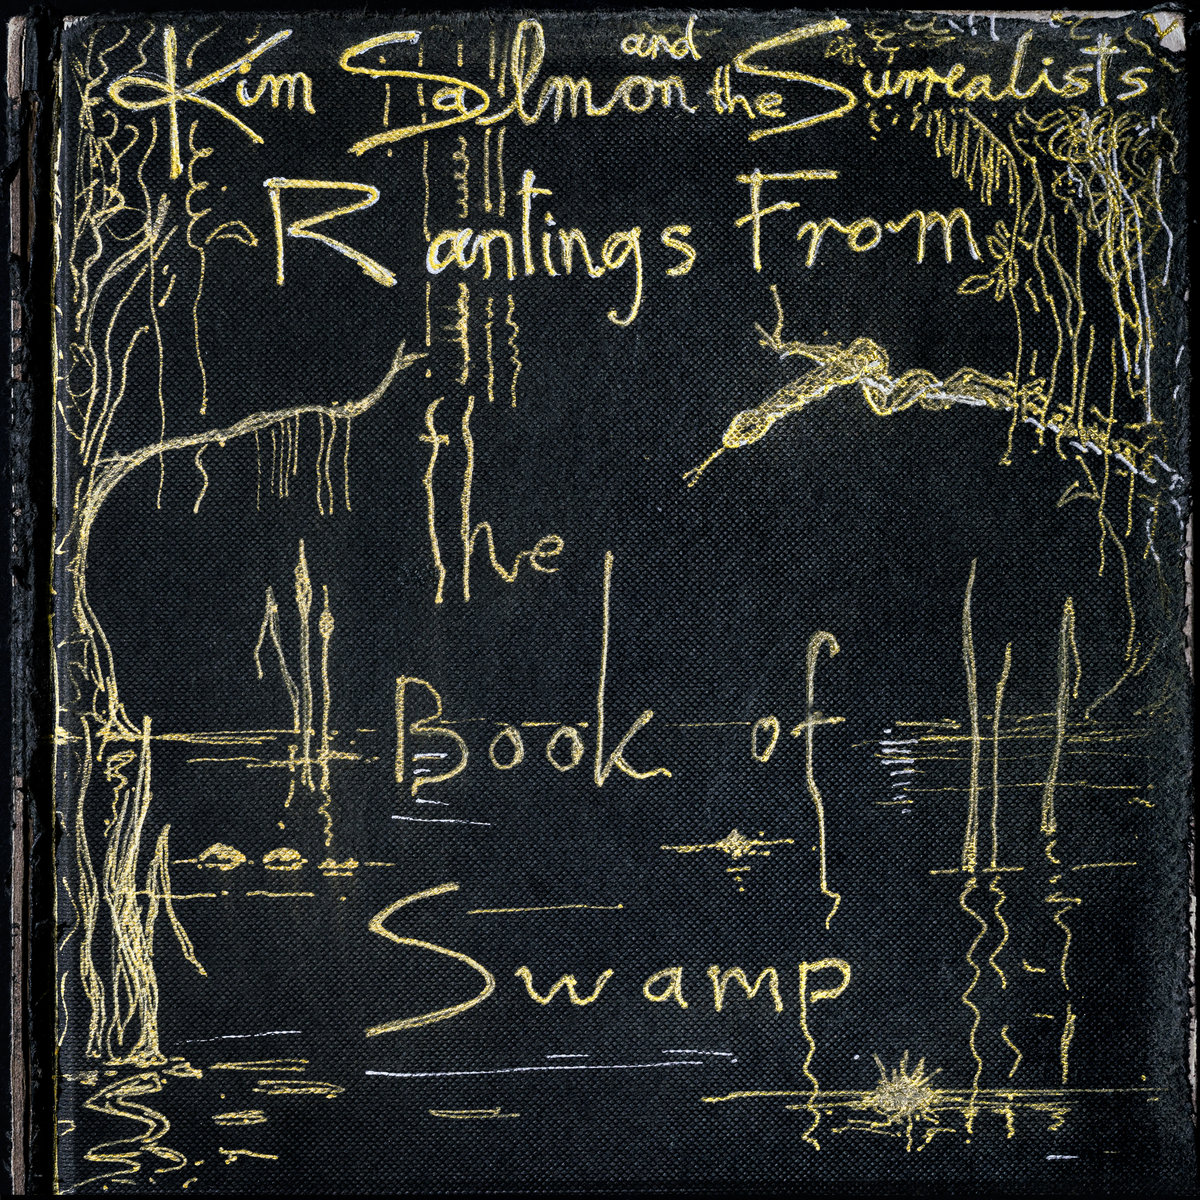 Kim Salmon And The Surrealists, ecco il nuovo album 3 - fanzine